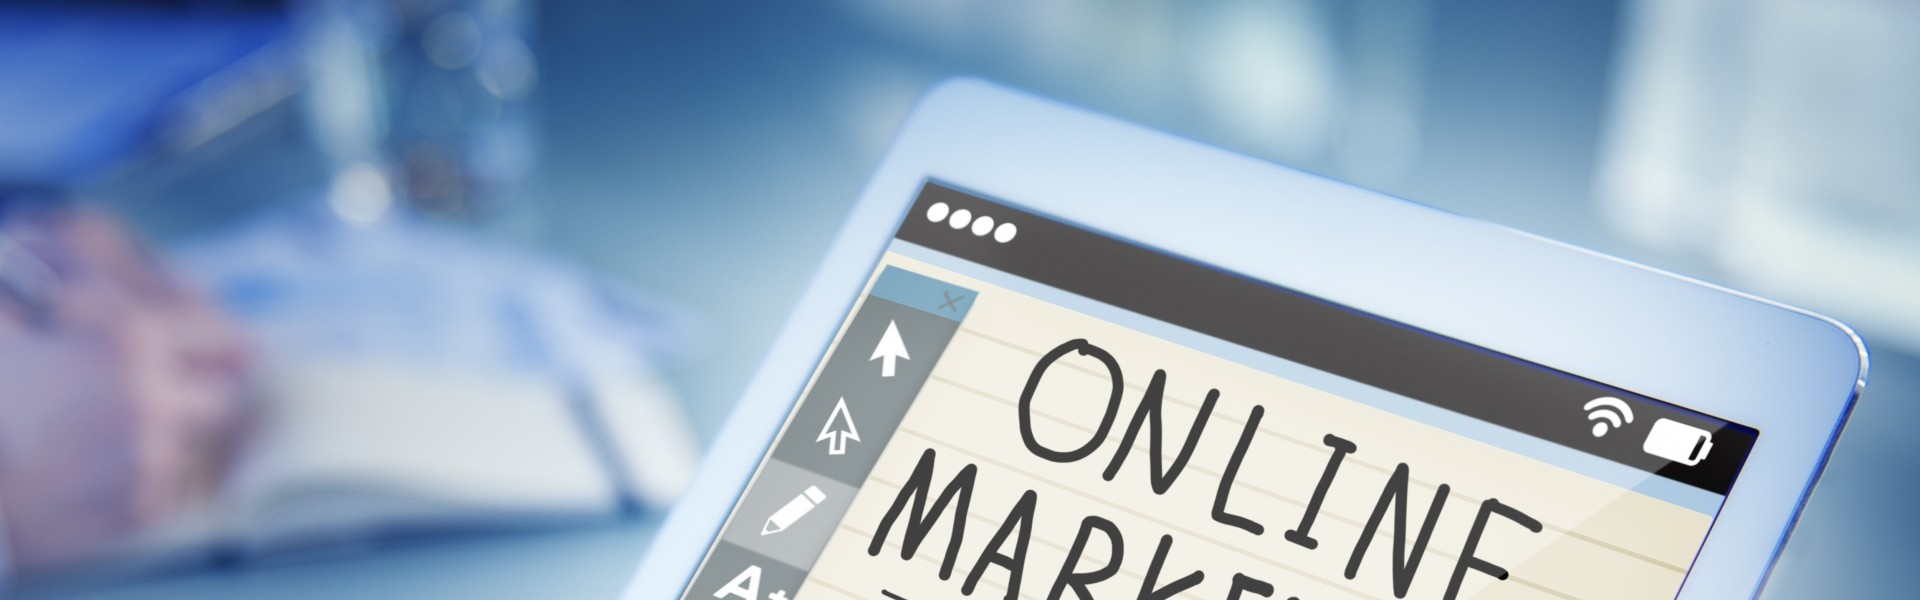 Online marketing costs